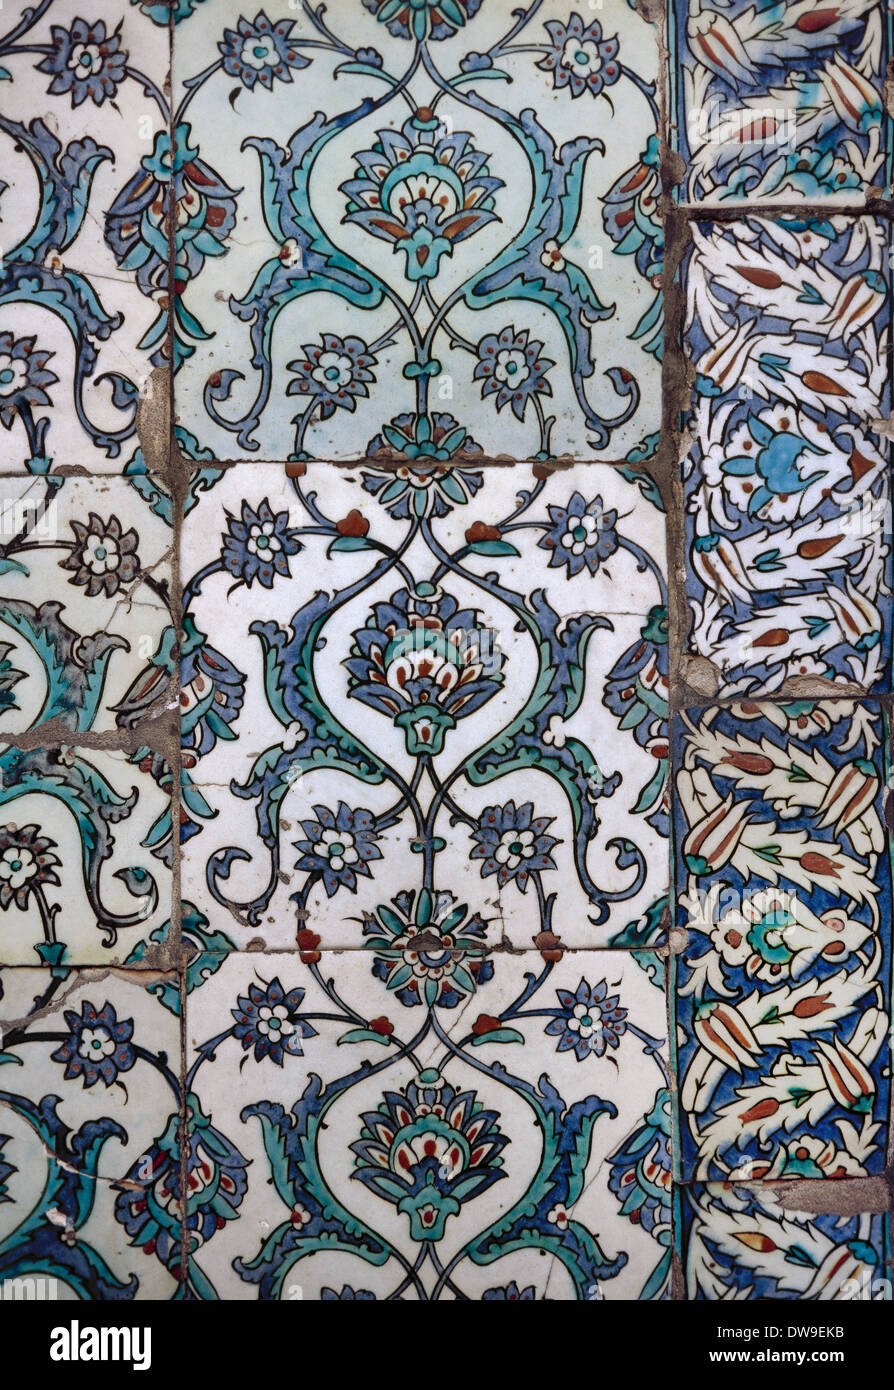 Turkey. Istanbul. Topkapi Palace. Detail of glazed pottery that decorates the walls, made by potters of Iznik. - Stock Image